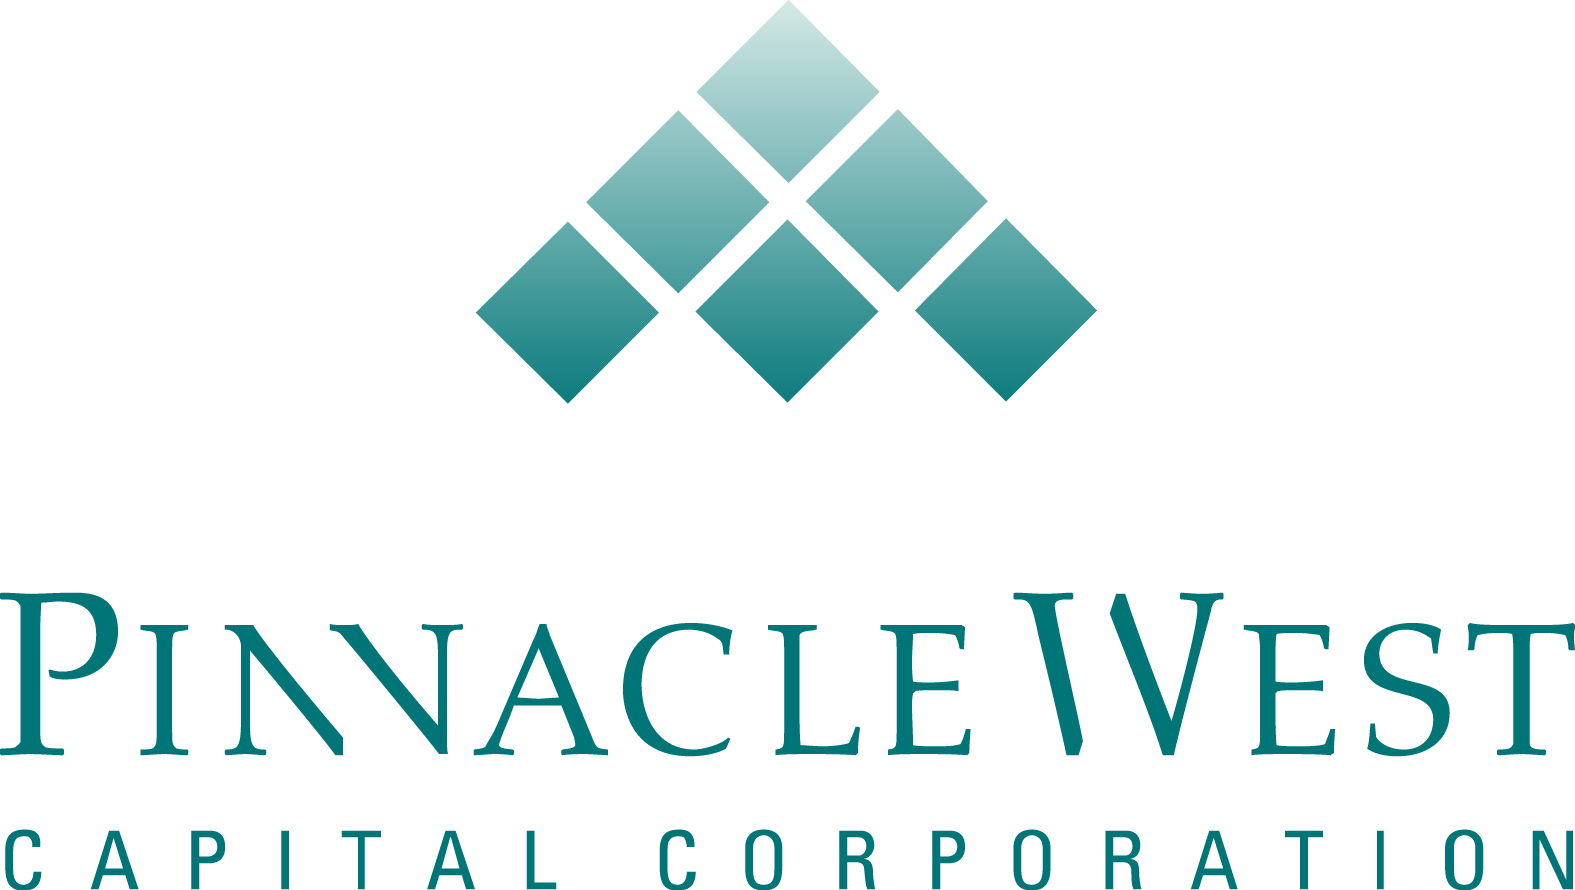 pinnacle-west-capital-corp-pnw-shares-gap-up-to-7607.jpg